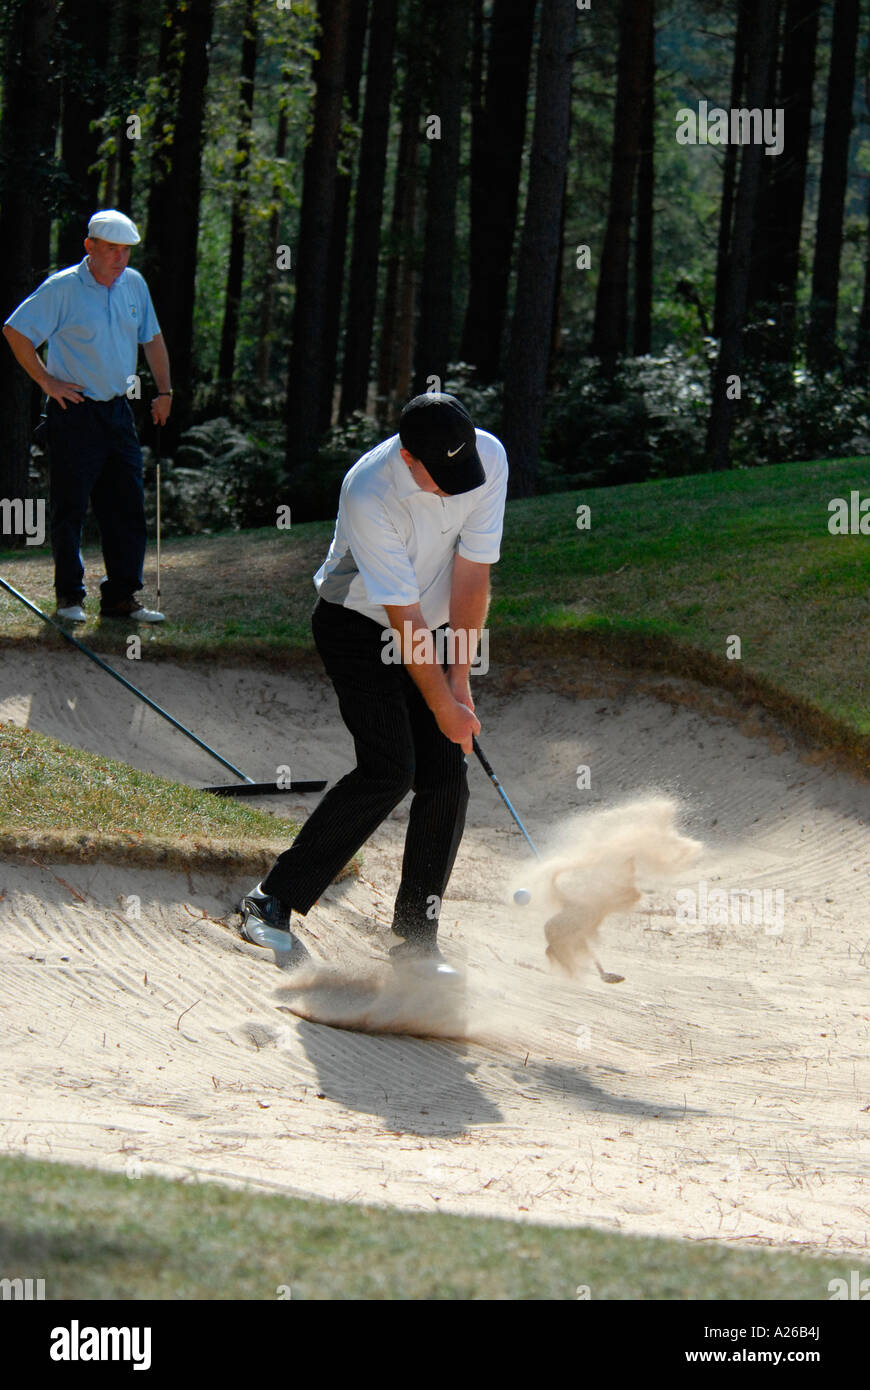 A player hits the ball in a sand bunker at a Pro am one day golf tournament,England,U.K,Britain - Stock Image